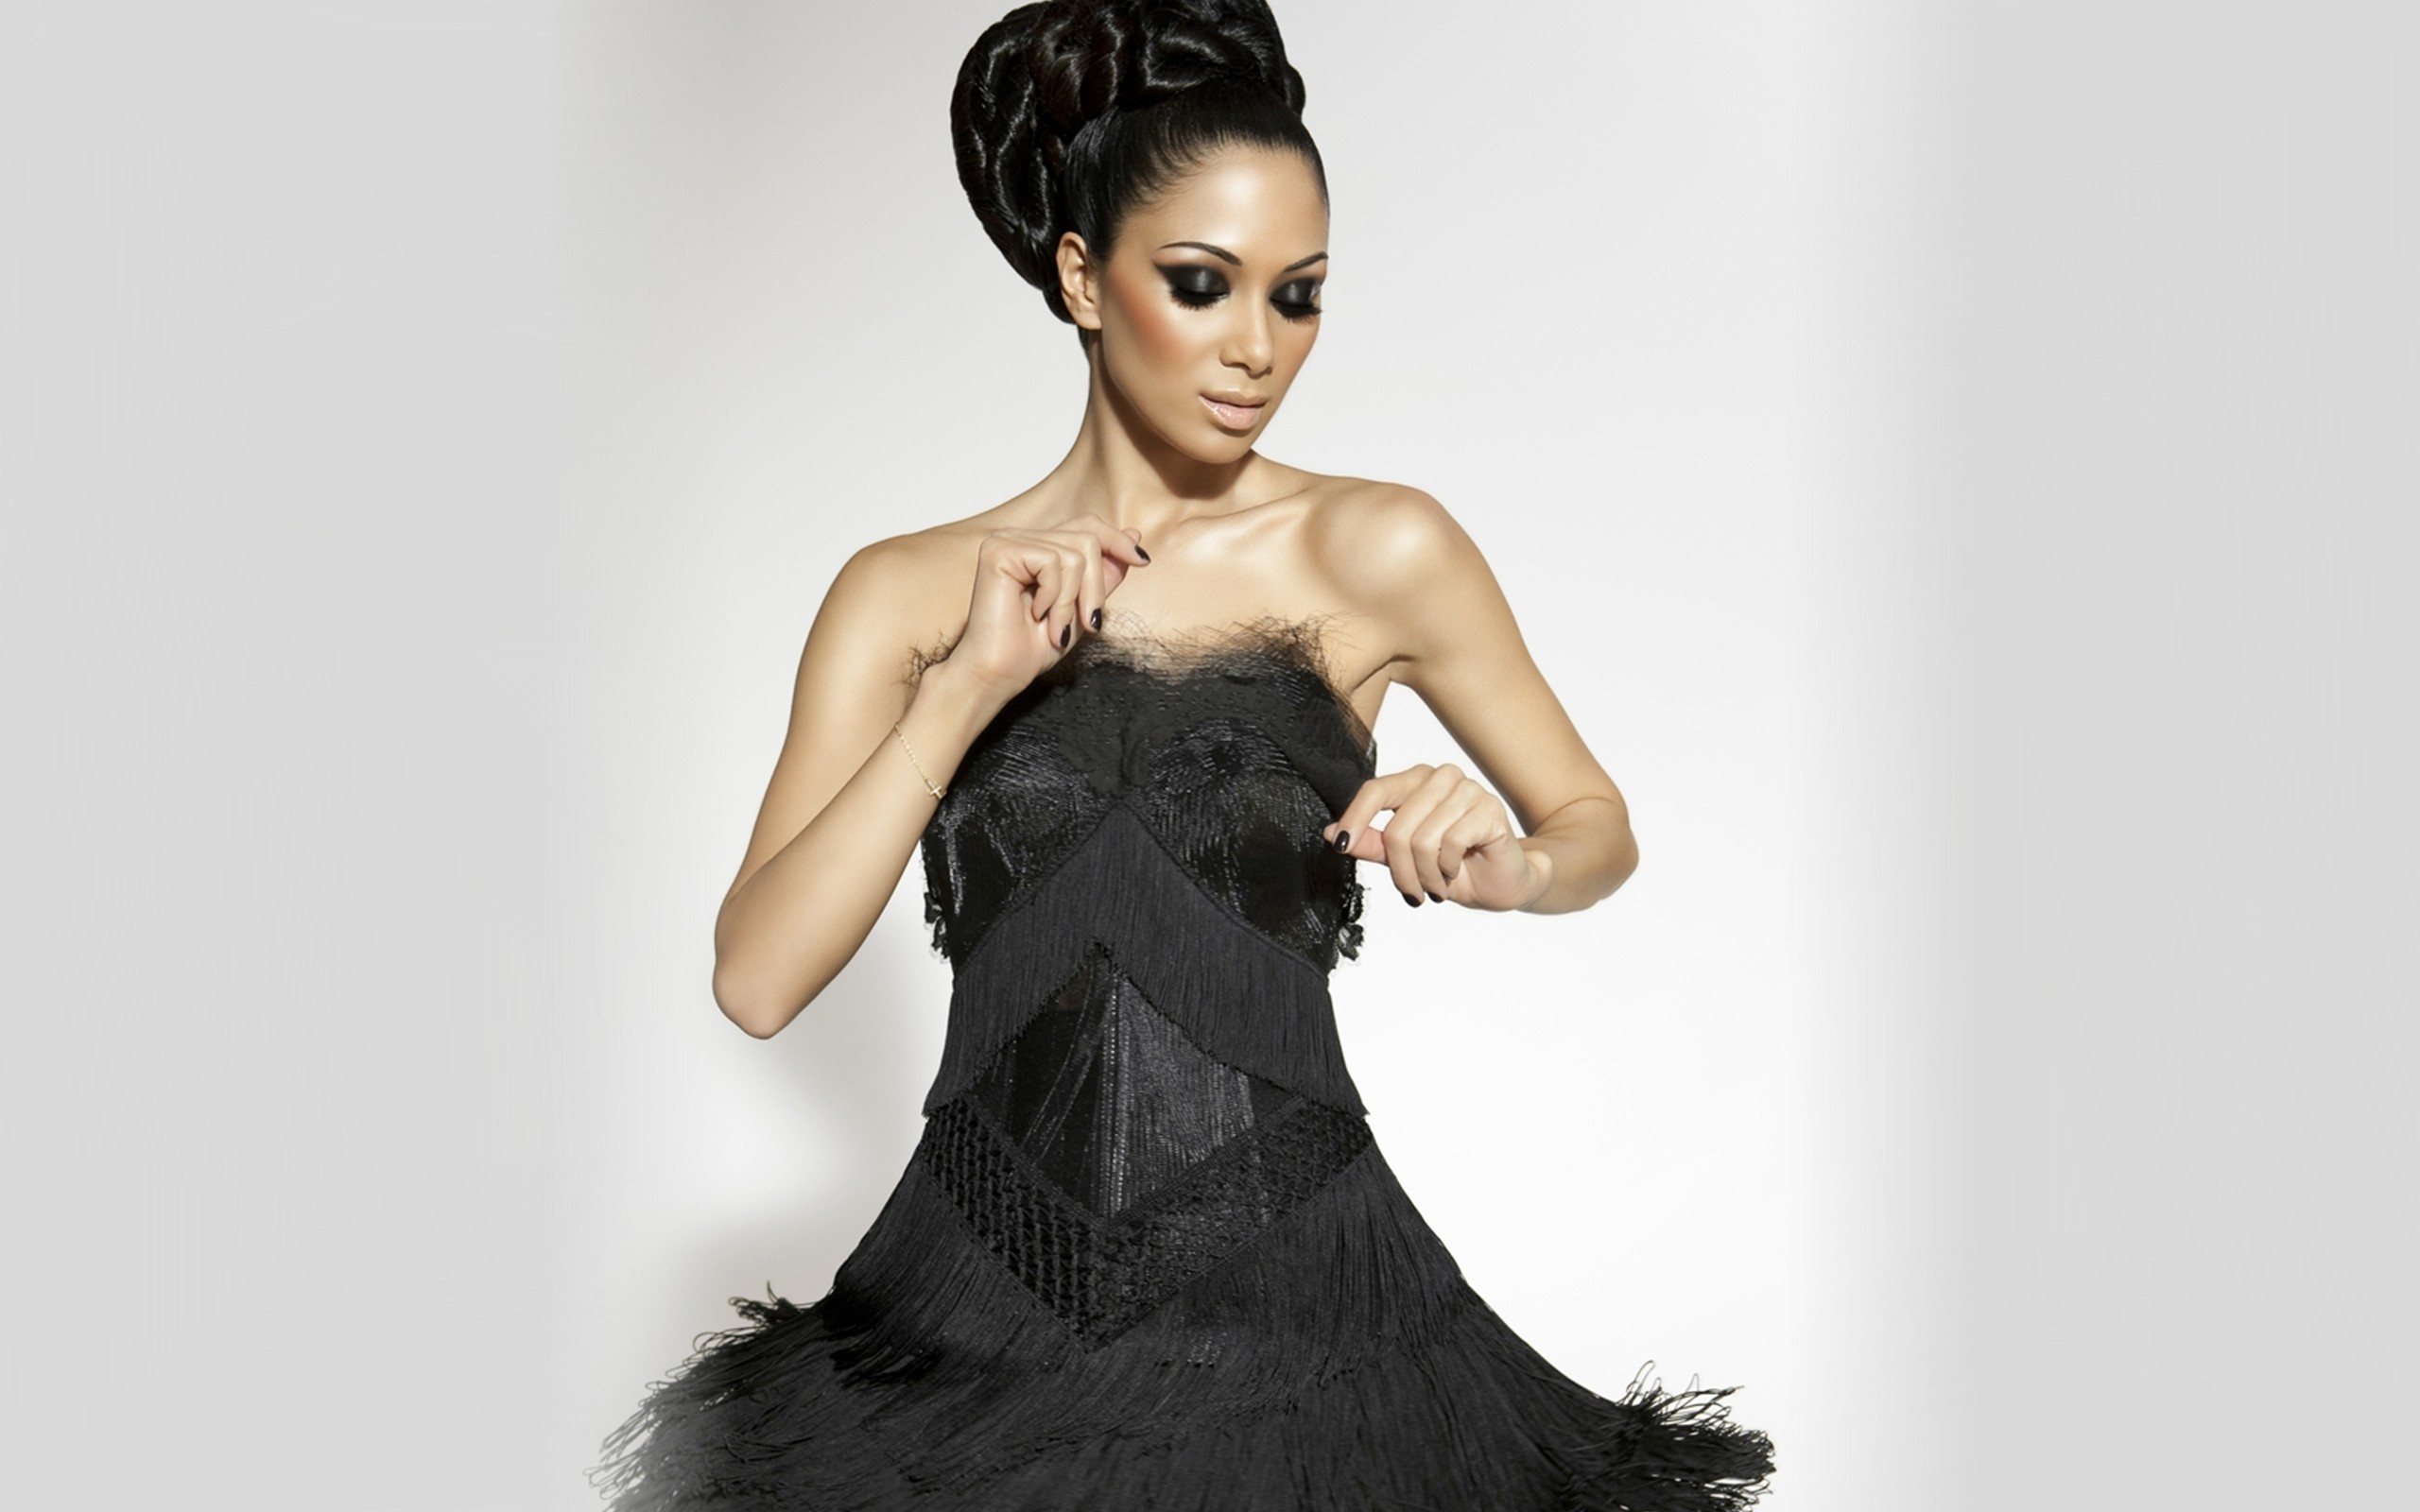 Music - Nicole Scherzinger  Wallpaper